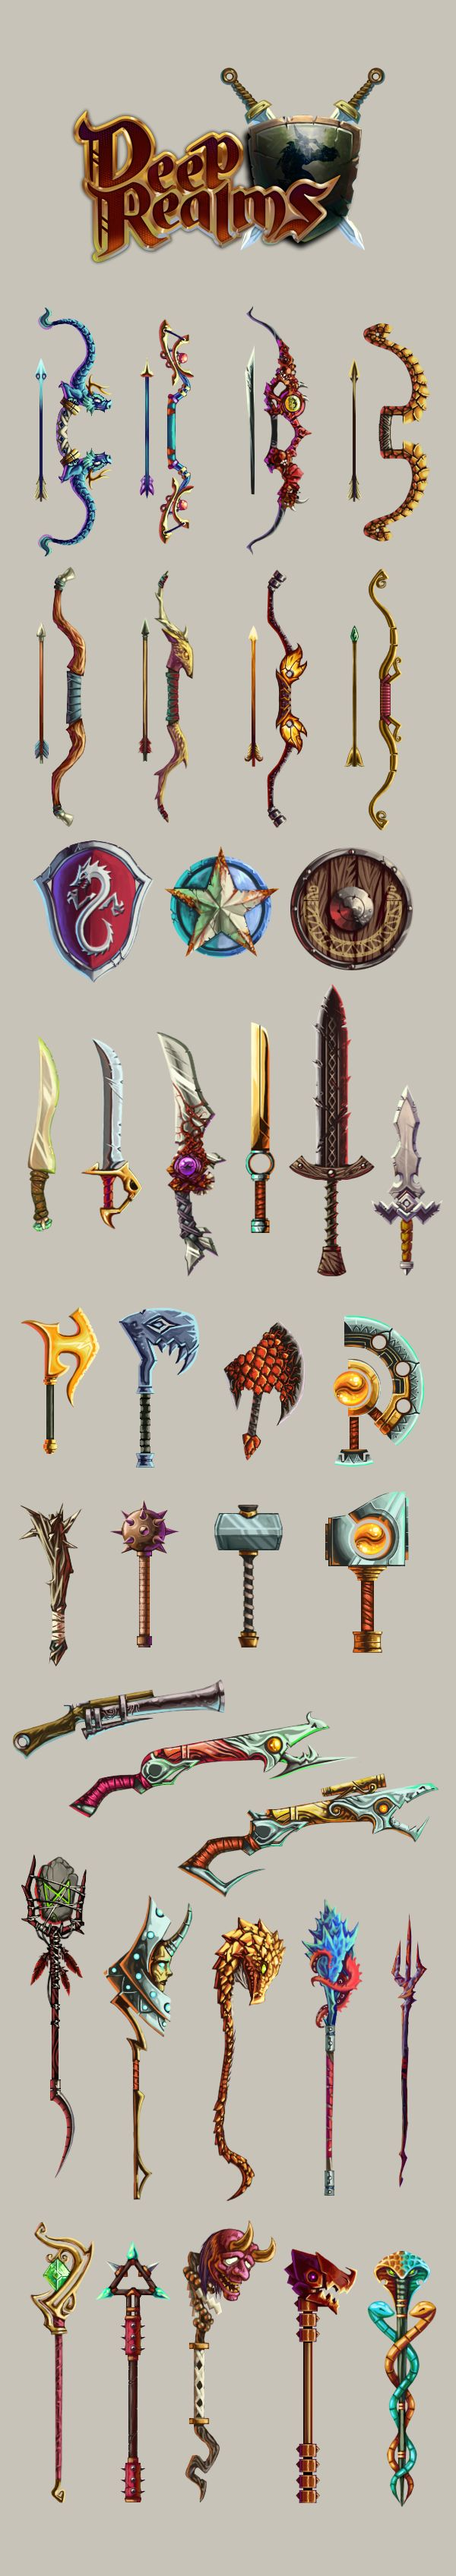 Weapon designs for Deep Realms social game.